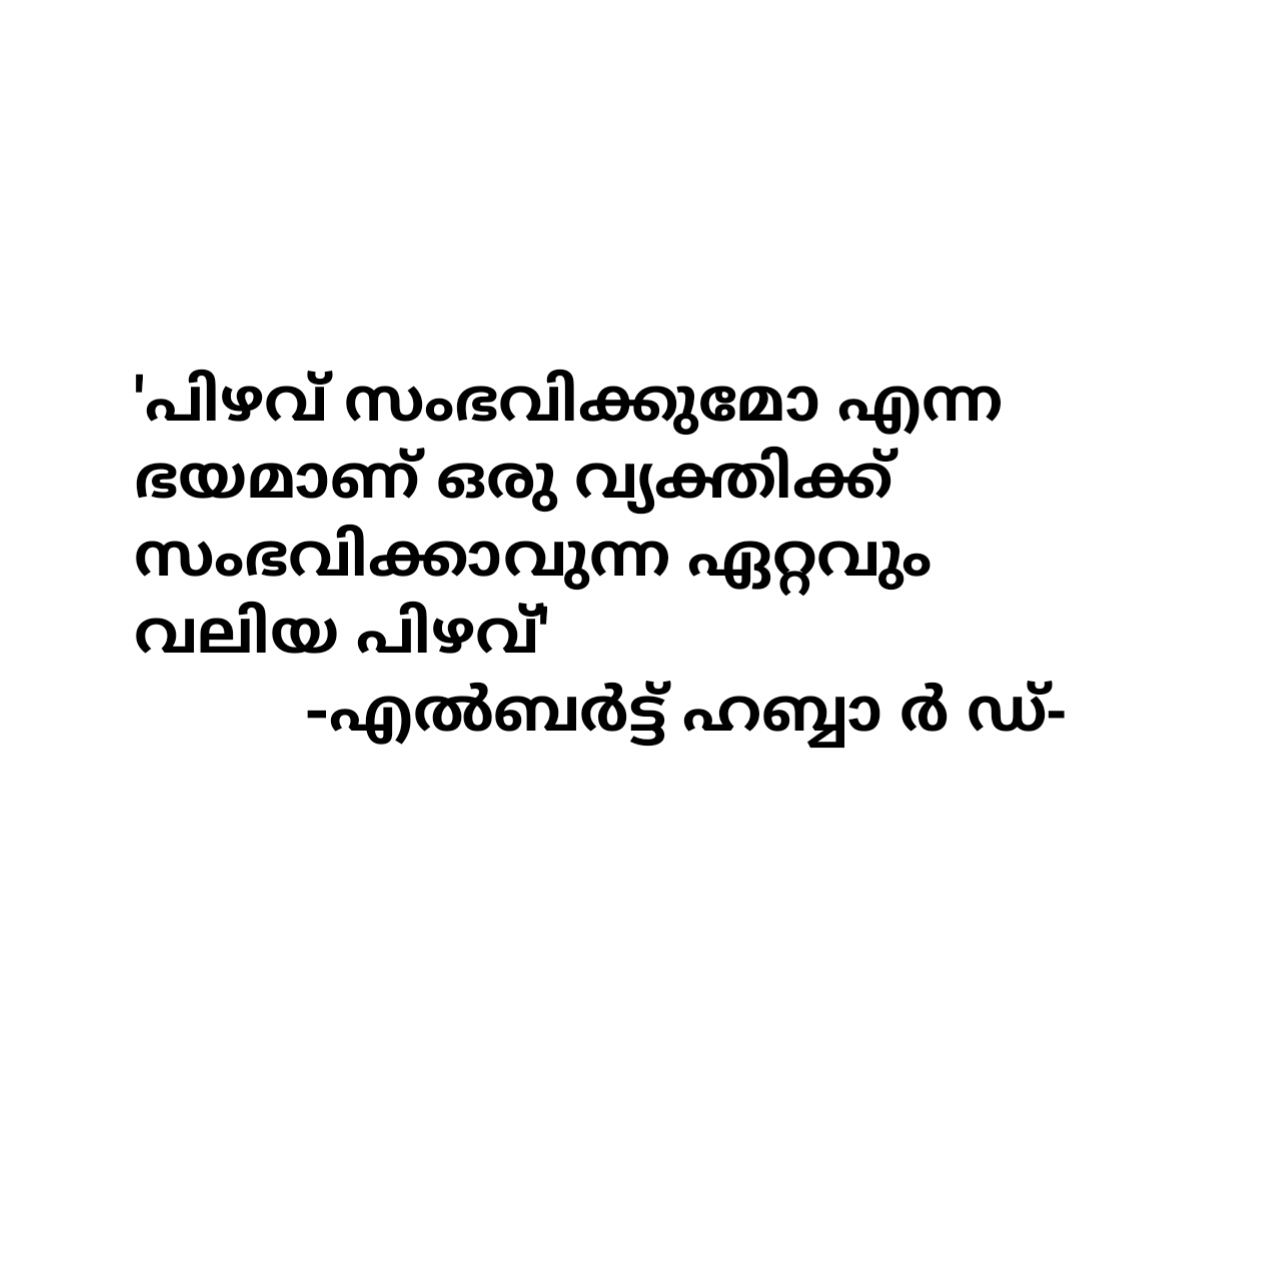 Image of: Funny Mistakes Positive Life Quotes Malayalam Positive Life Quotes Malayalam Mistakes